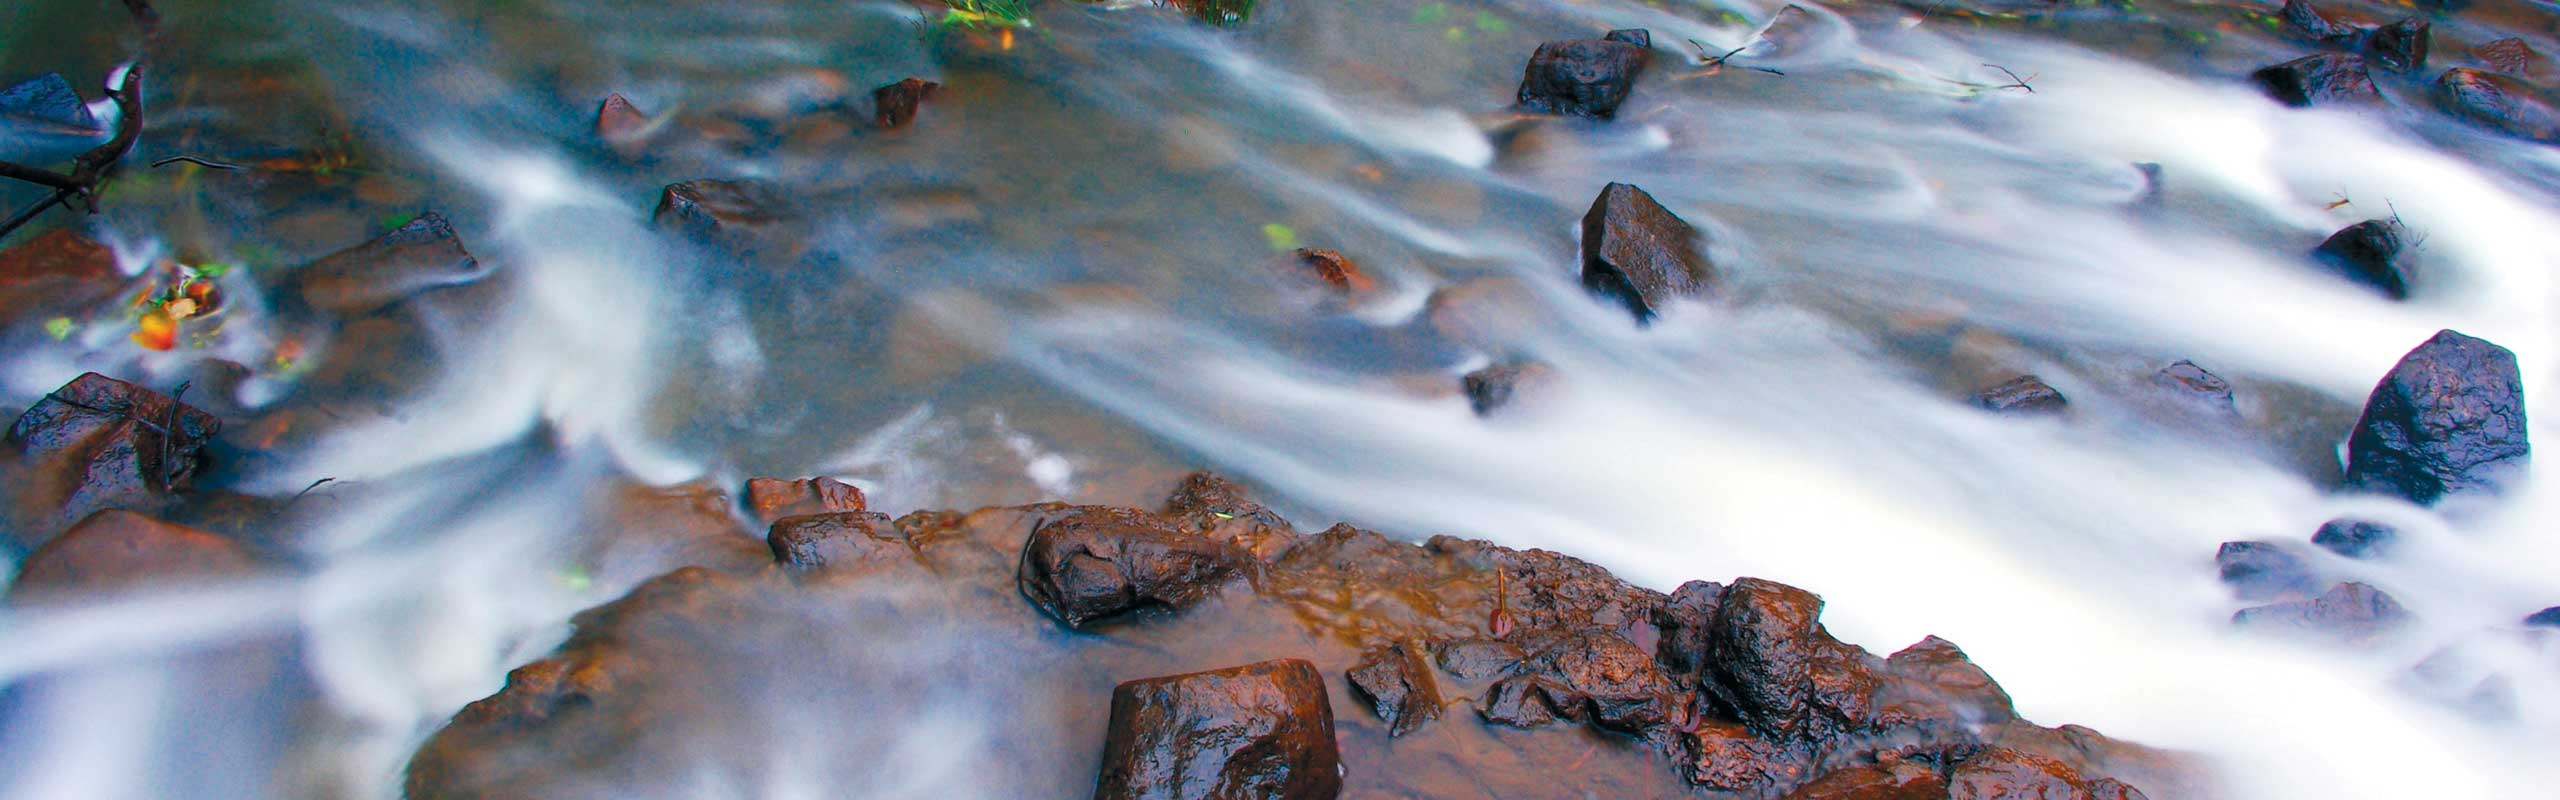 Photo: Water flowing over riffle